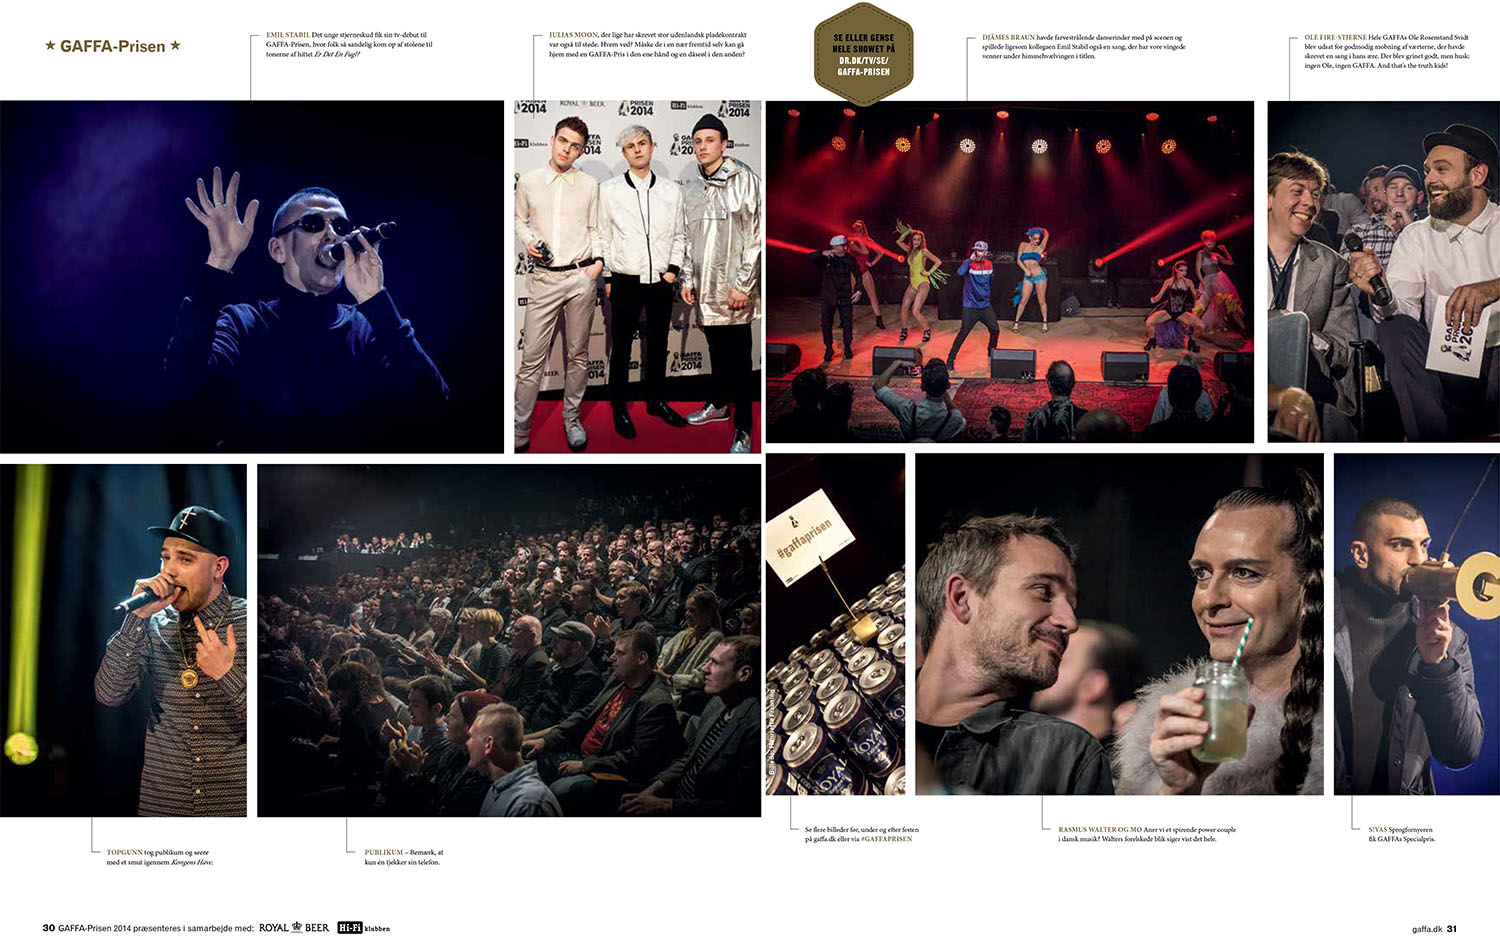 GAFFA Magazine - GAFFA Prisen 2014 - January 2014 Issue